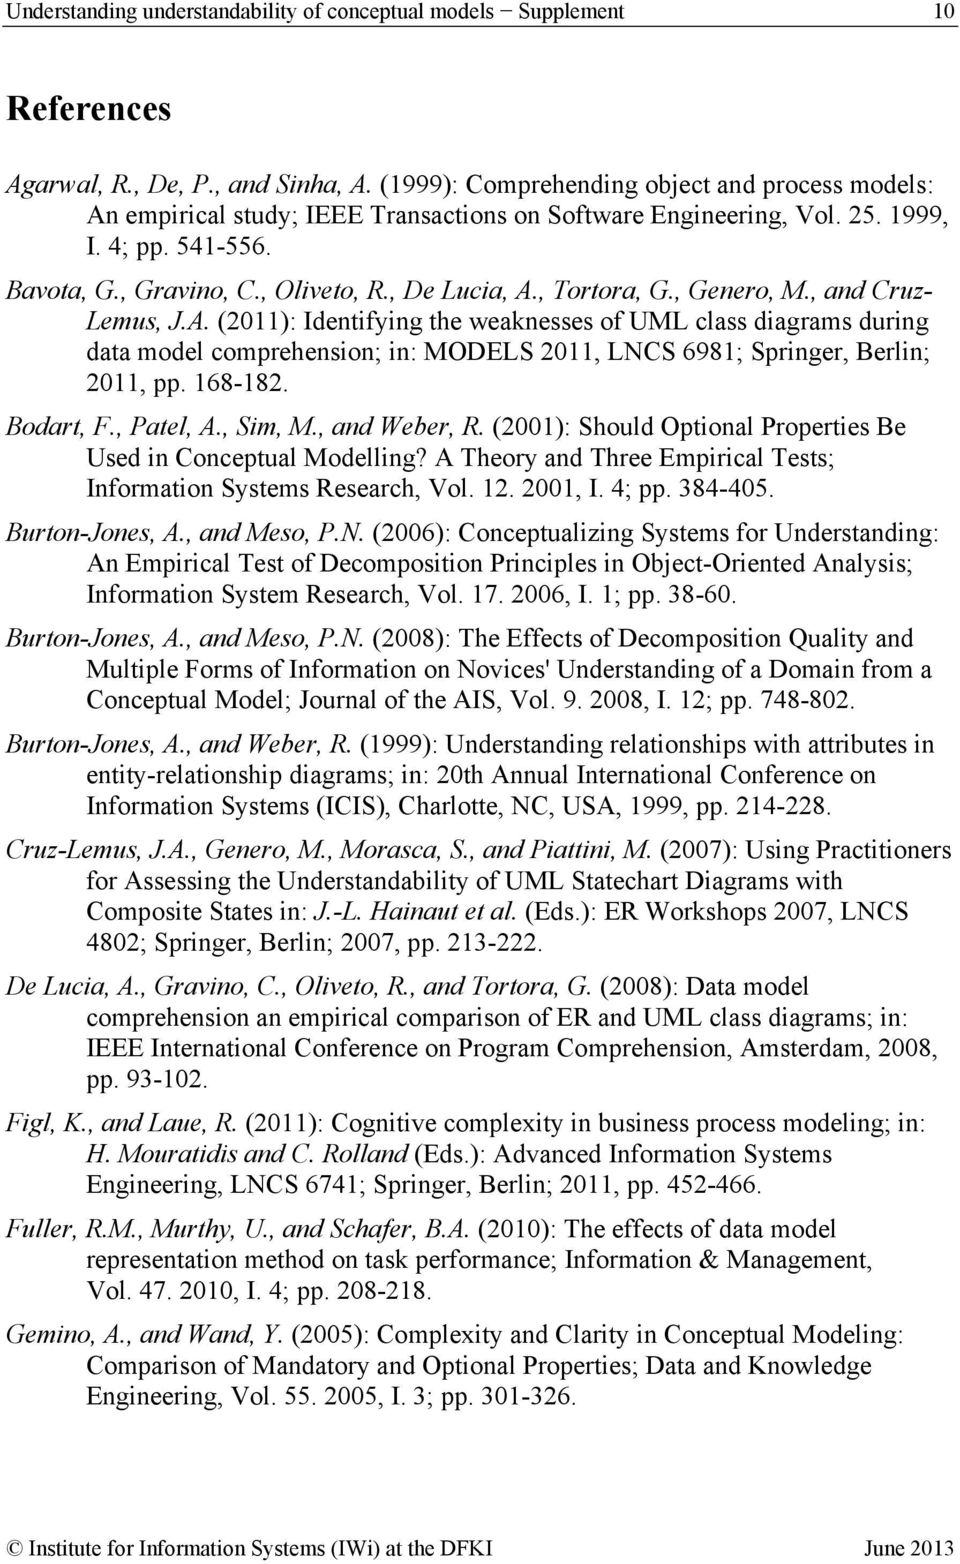 , Tortora, G., Genero, M., and Cruz- Lemus, J.A. (2011): Identifying the weaknesses of UML class diagrams during data model ; in: MODELS 2011, LNCS 6981; Springer, Berlin; 2011, pp. 168-182.